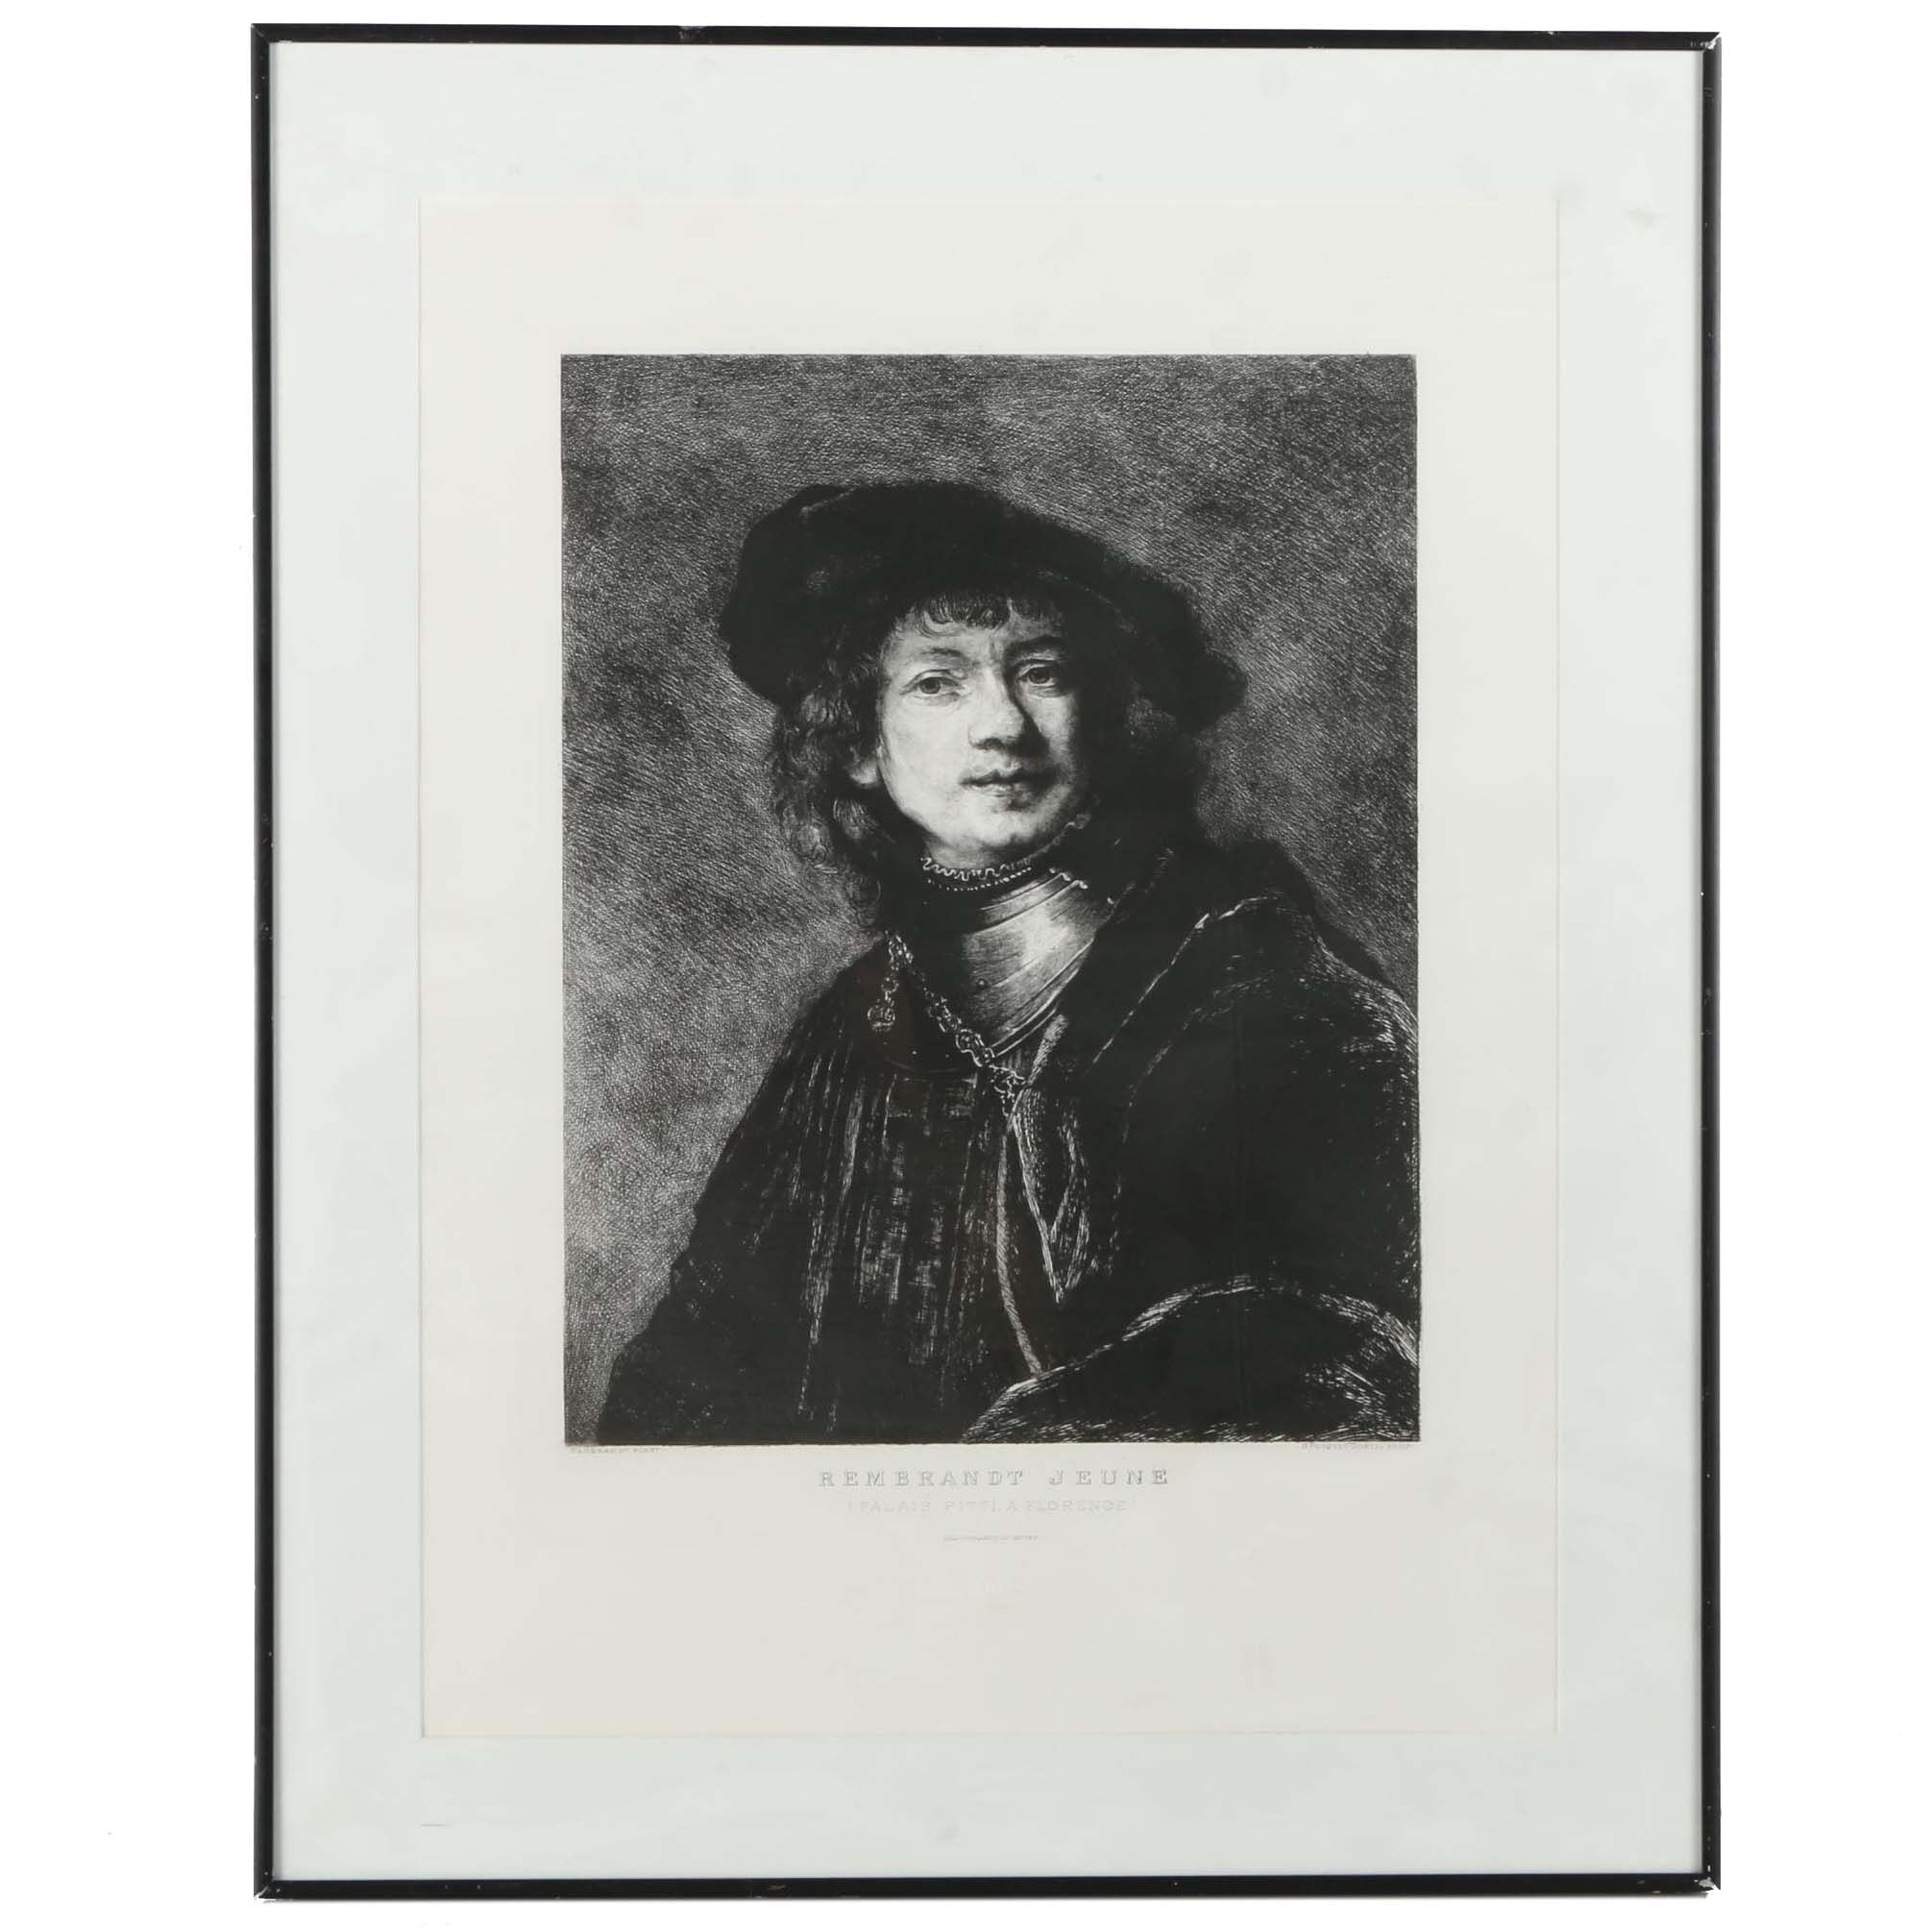 """Reproduction Engraving on Paper After Rembrandt """"Self-Portrait"""""""